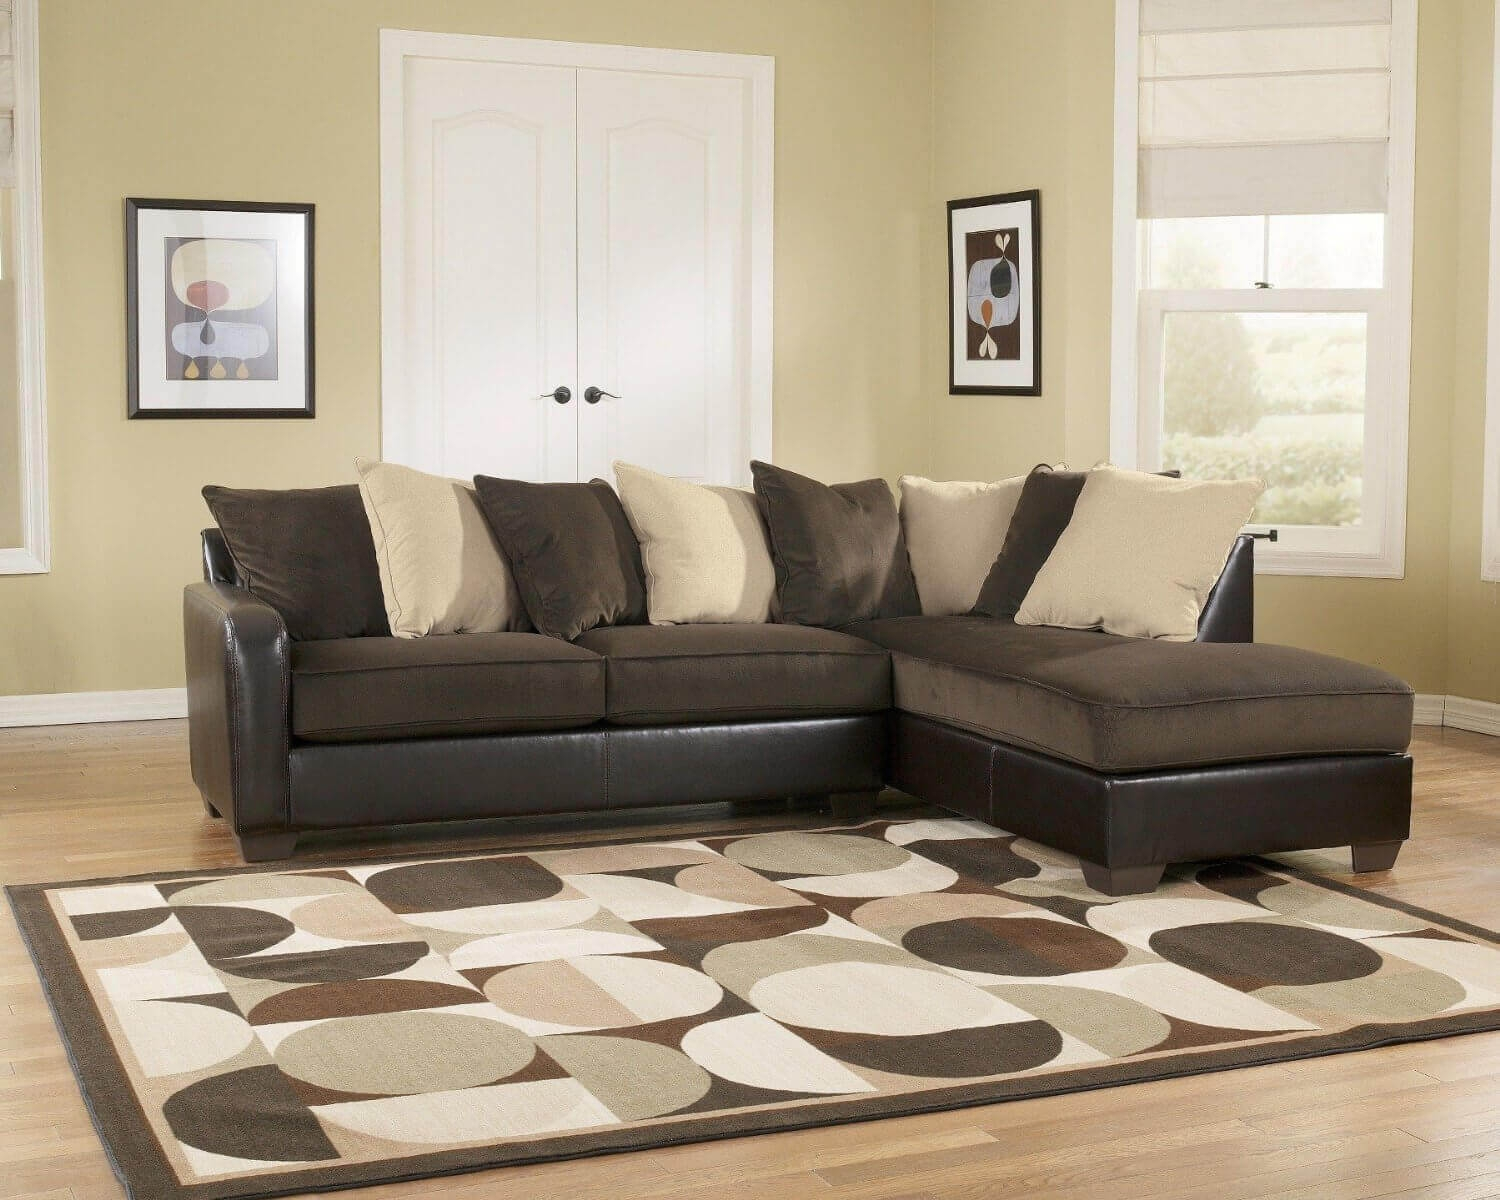 100 Beautiful Sectional Sofas Under 1000 For 10 Piece Sectional Sofa (View 13 of 15)